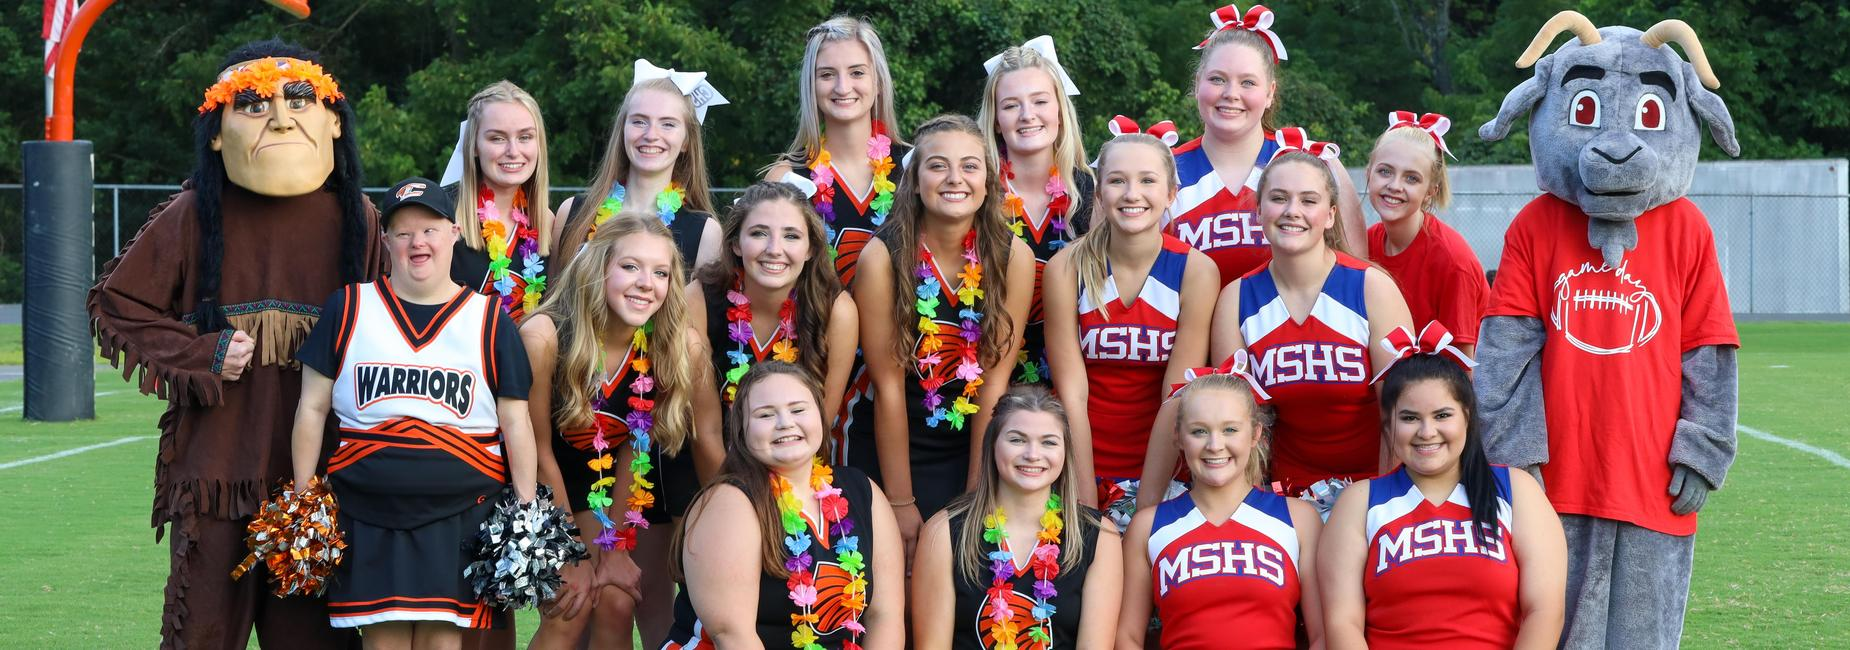 Photo of CHS and MSHS cheerleaders and mascots